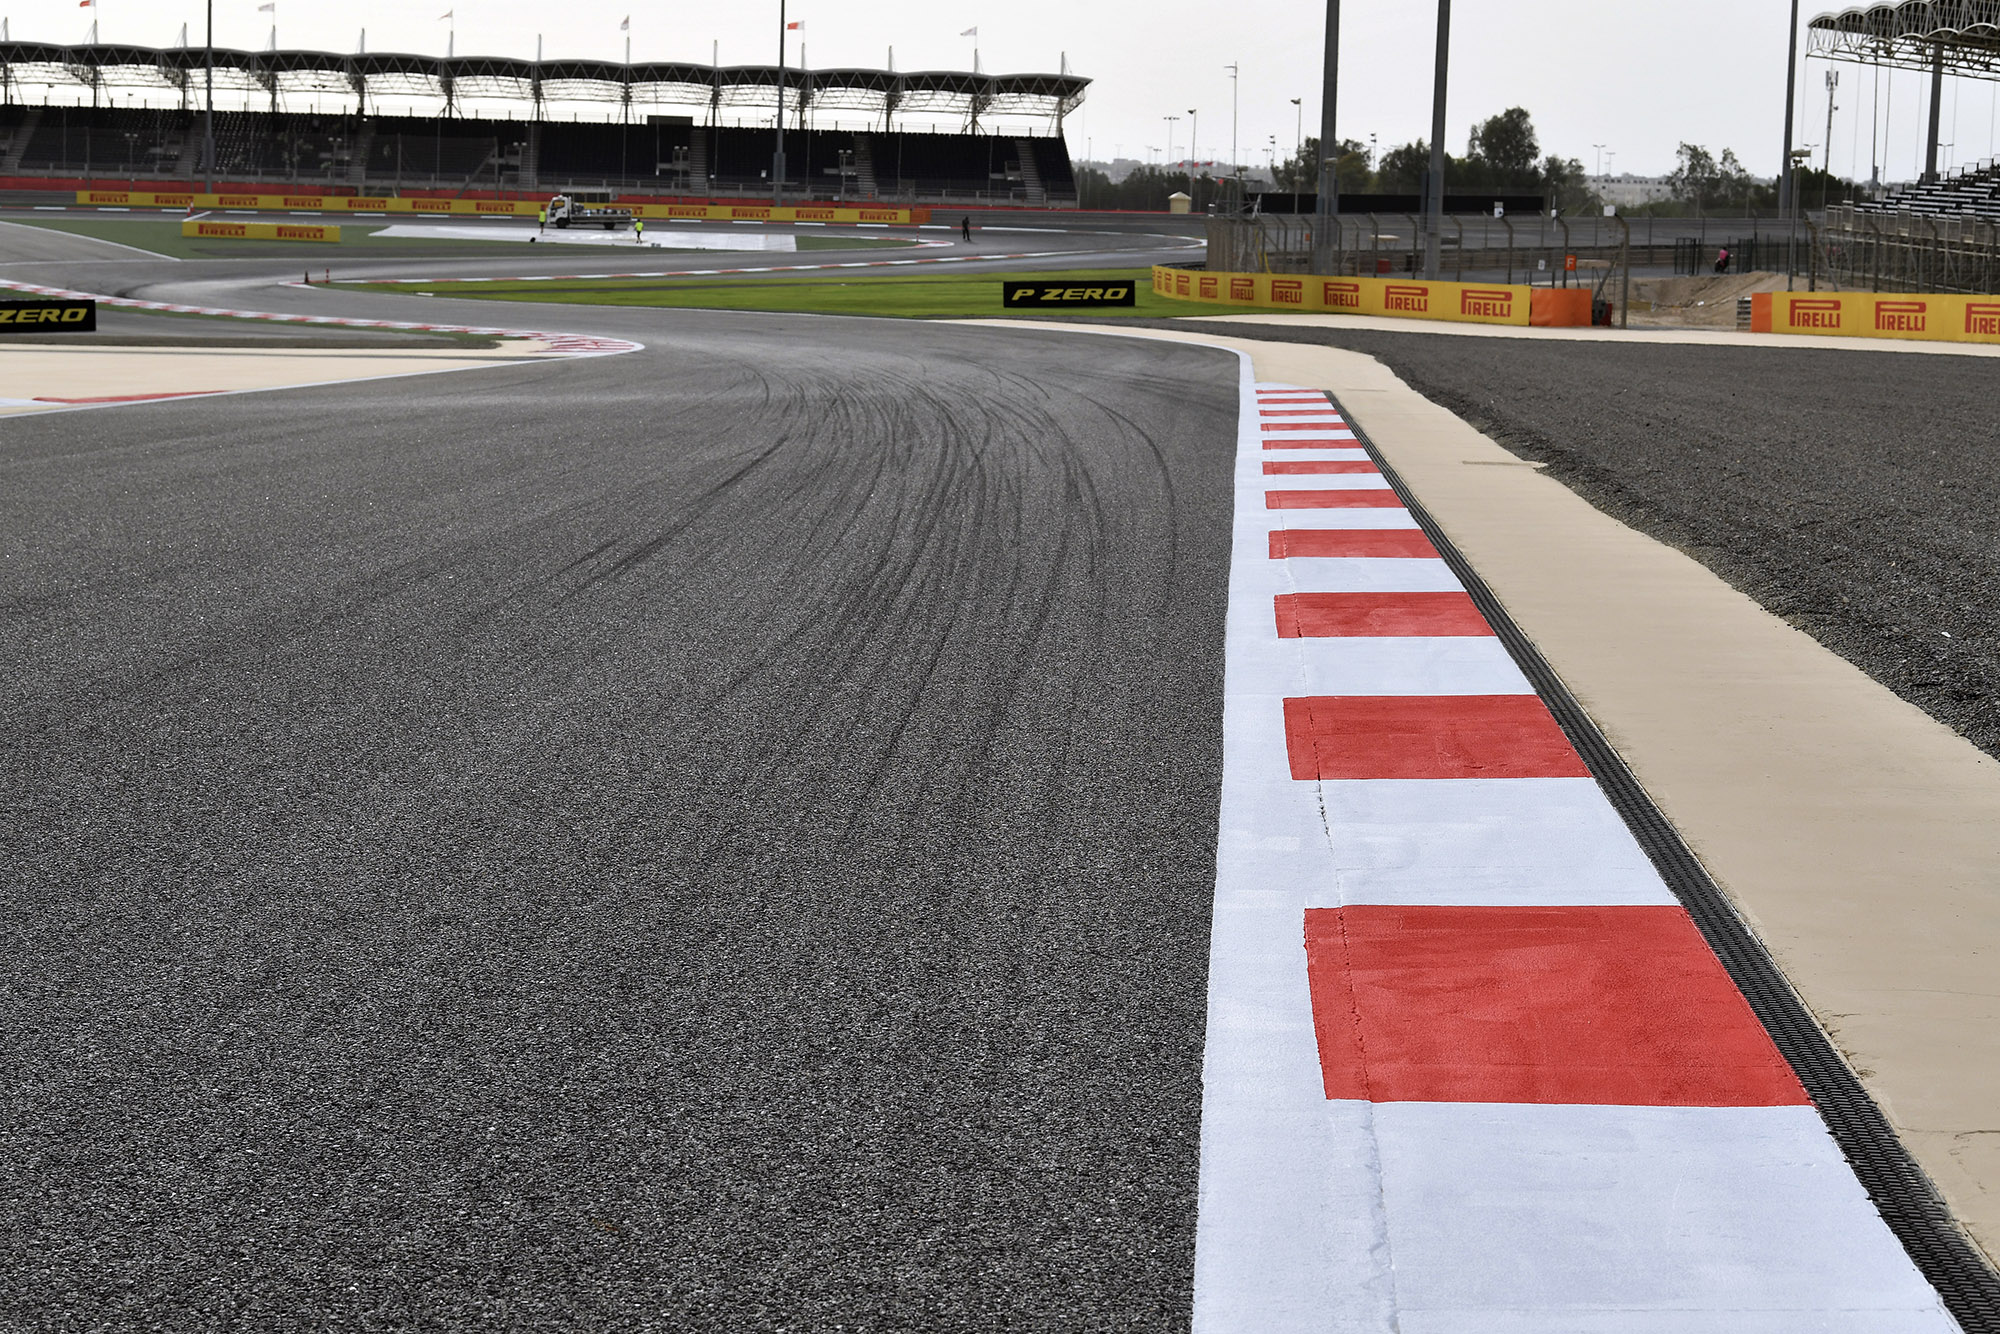 Empty track and stands at the Bahrain International Circuit in Sakhir